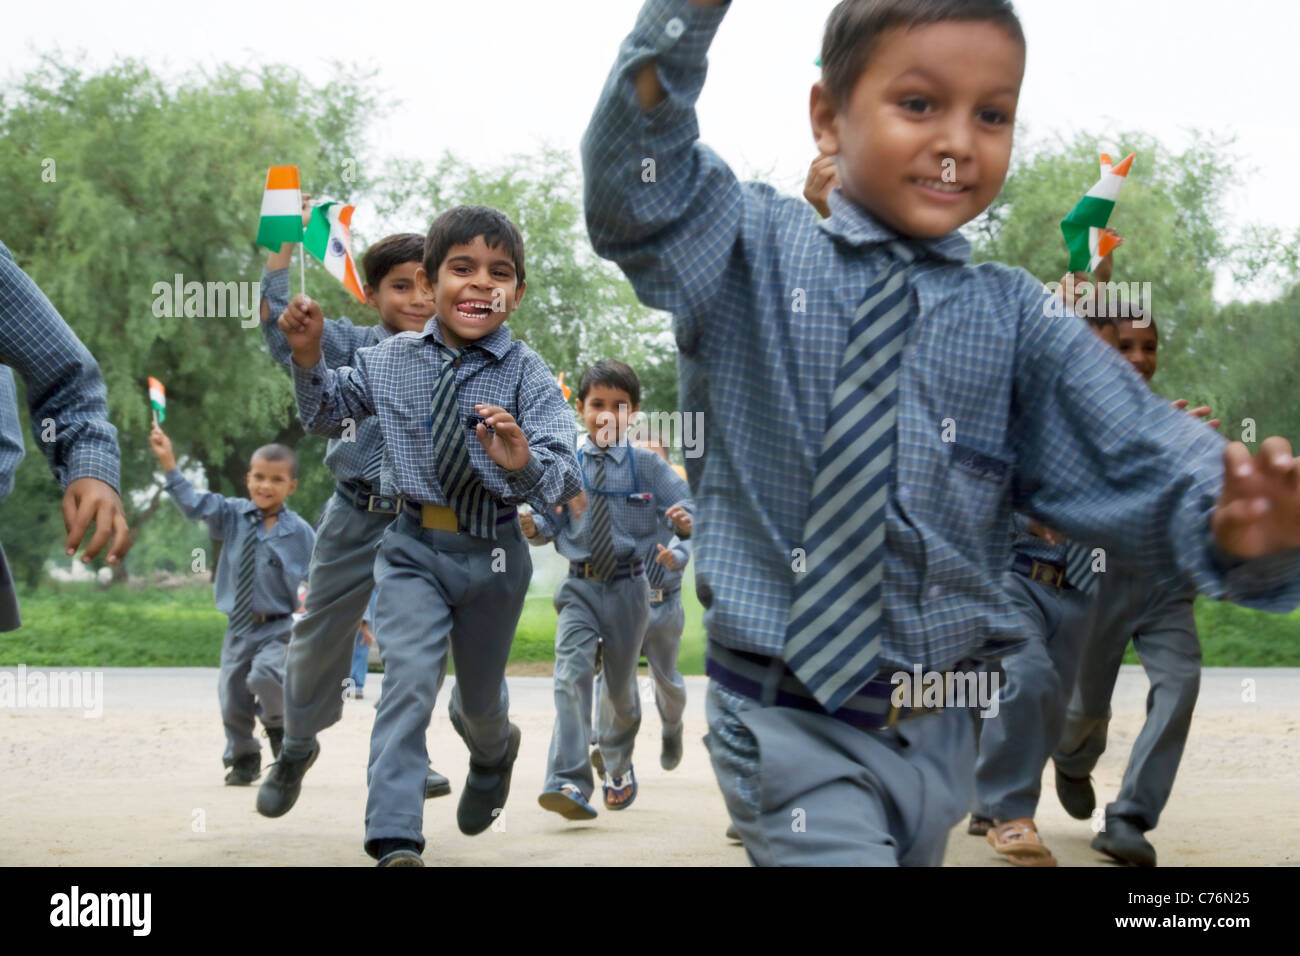 School boys running with the Indian flag - Stock Image